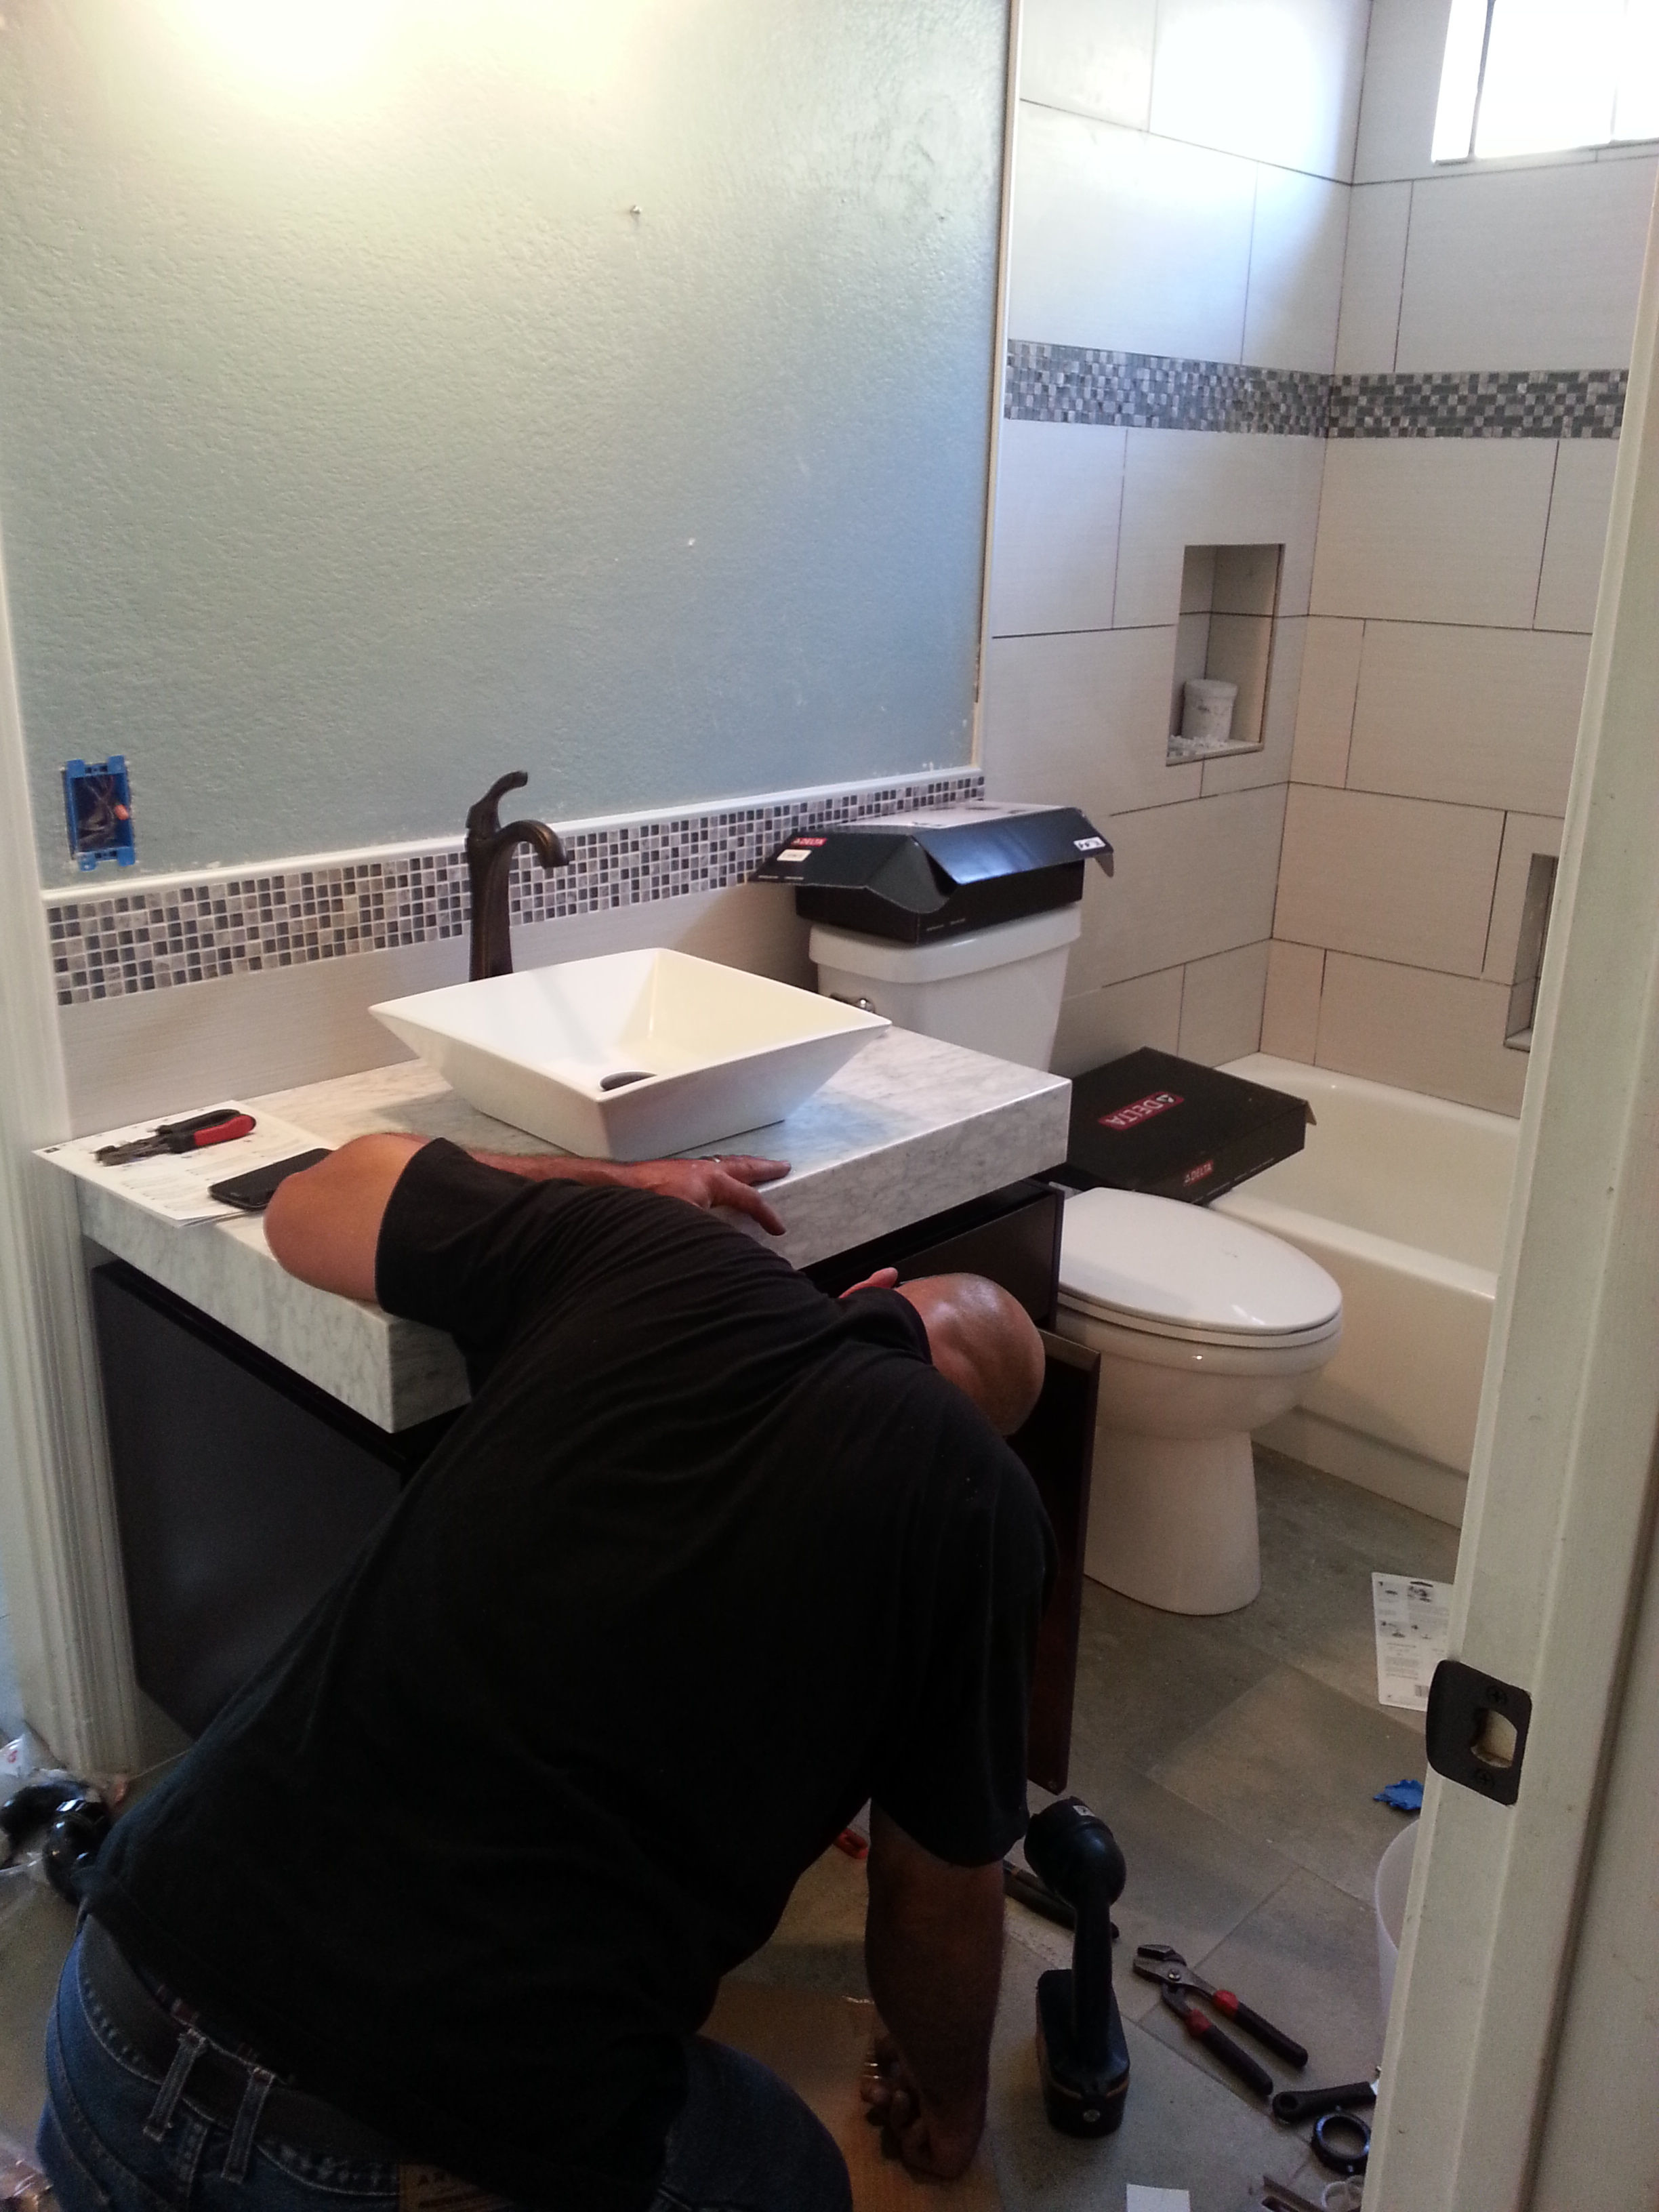 Peterson guest bath almost done.jpg